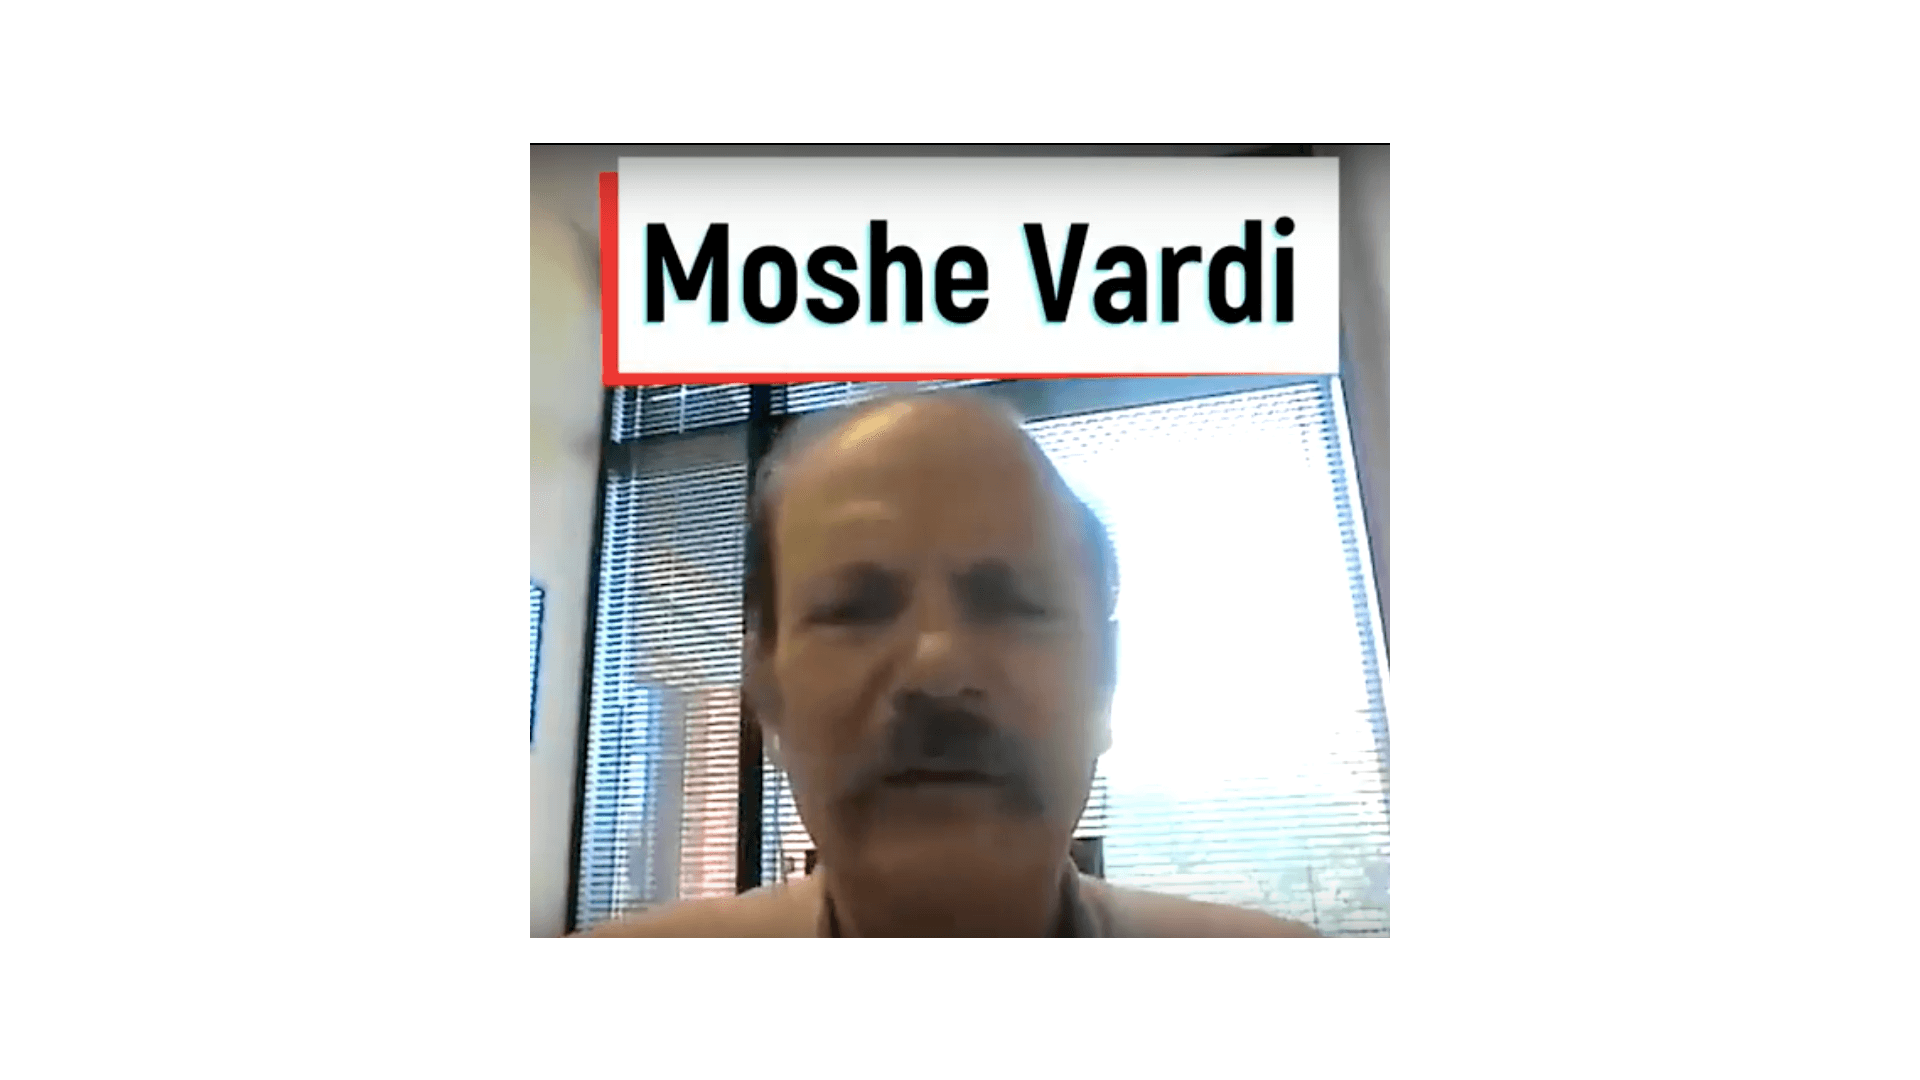 Interview with Prof. Moshe Vardi